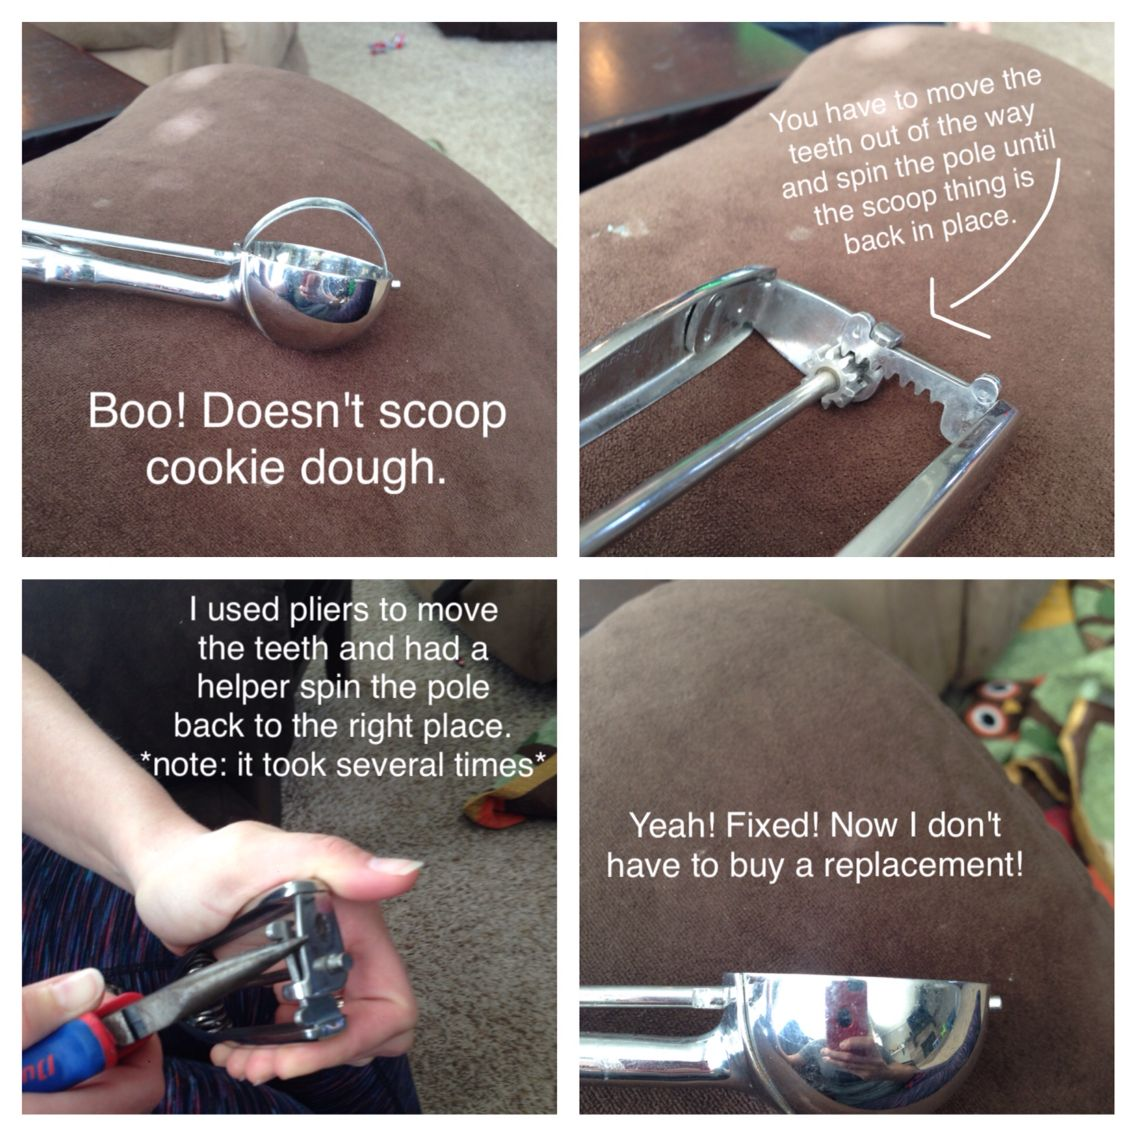 Fix Your Pampered Chef Cookie Scoop!